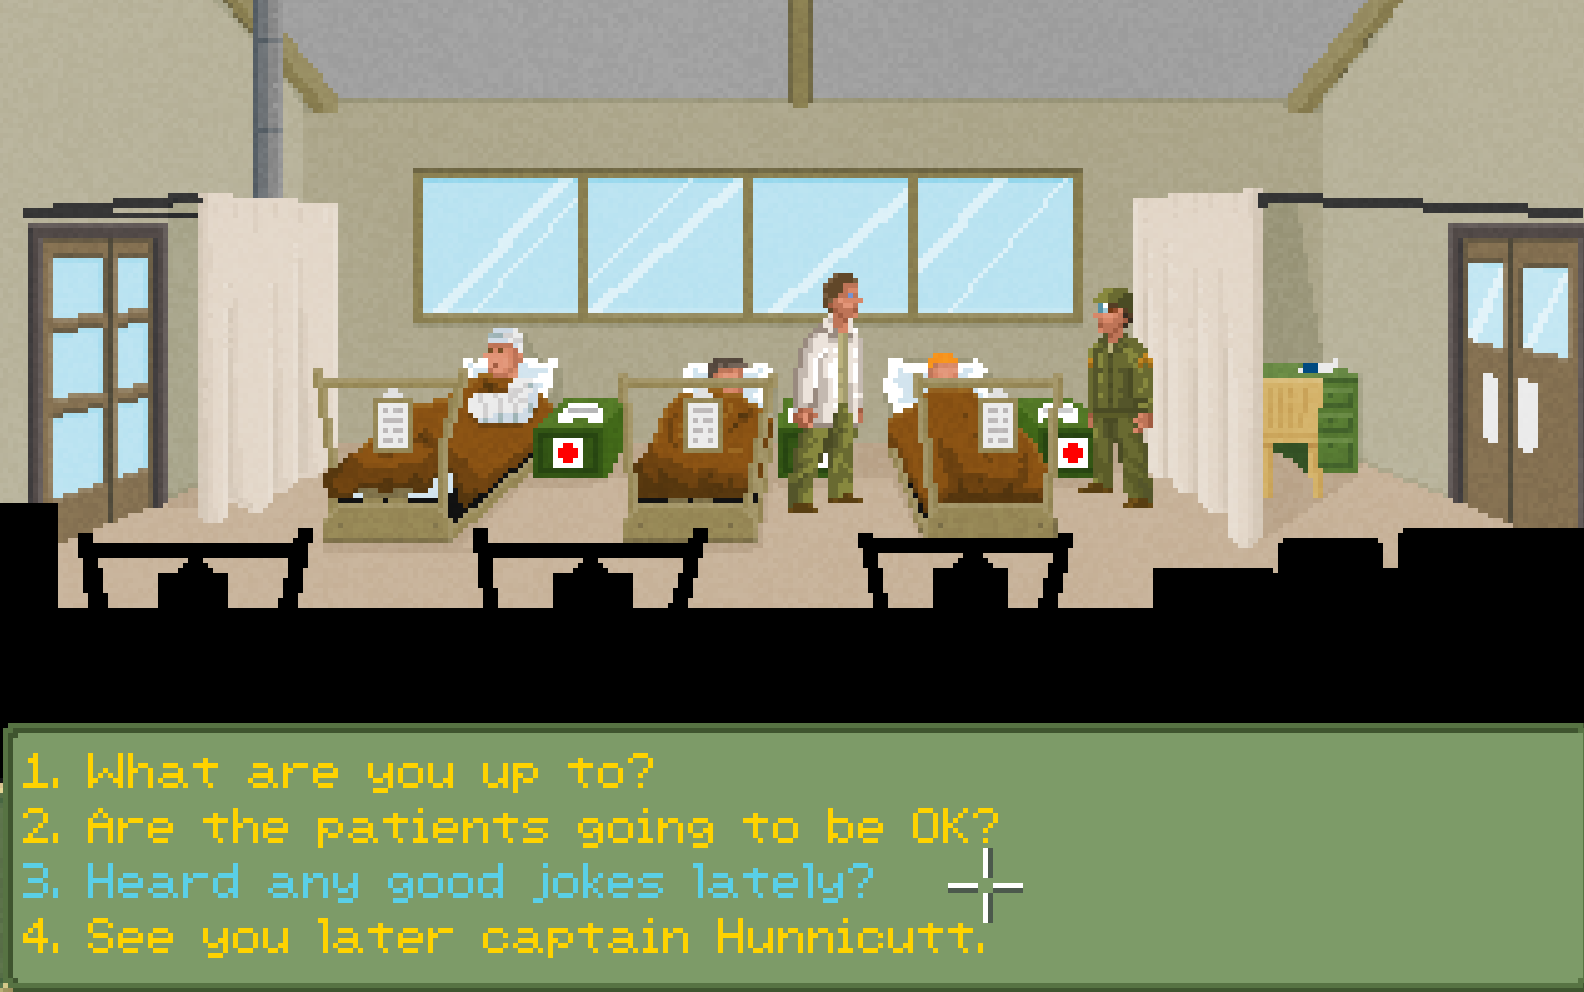 Screenshot 2 of M*A*S*H: Point n' Click adventure game width=